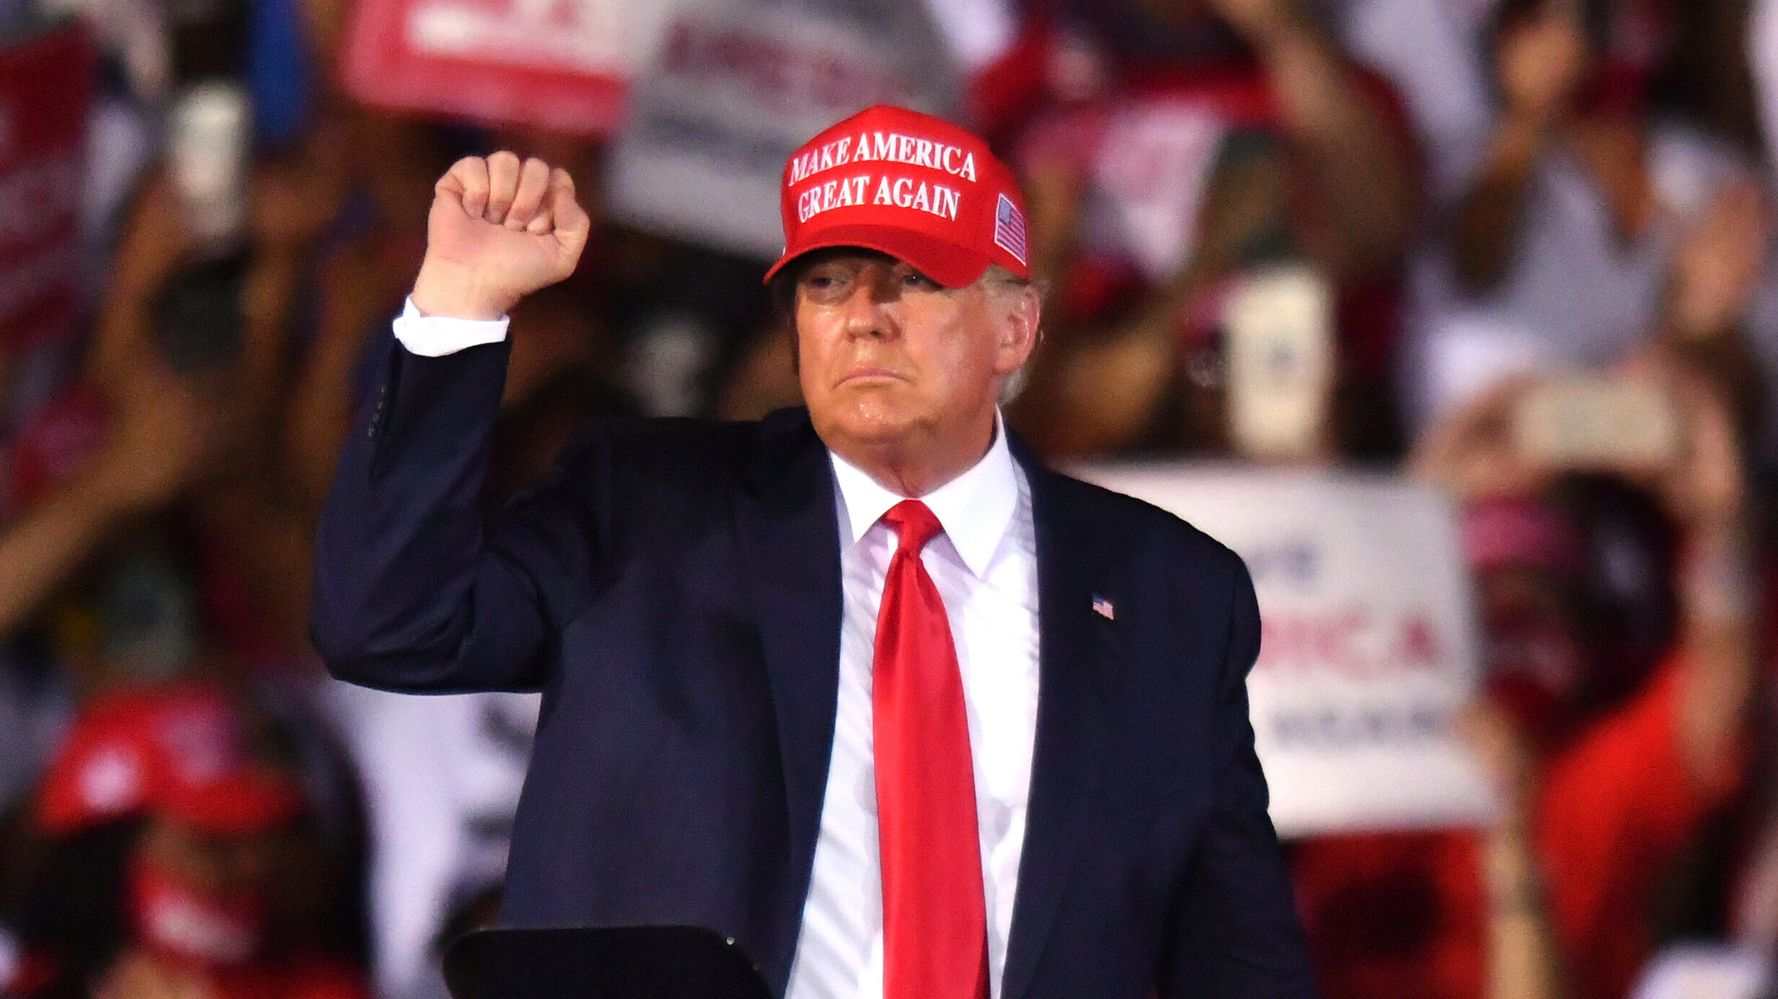 Trump Campaign Sets The Stage For Election Night Coup